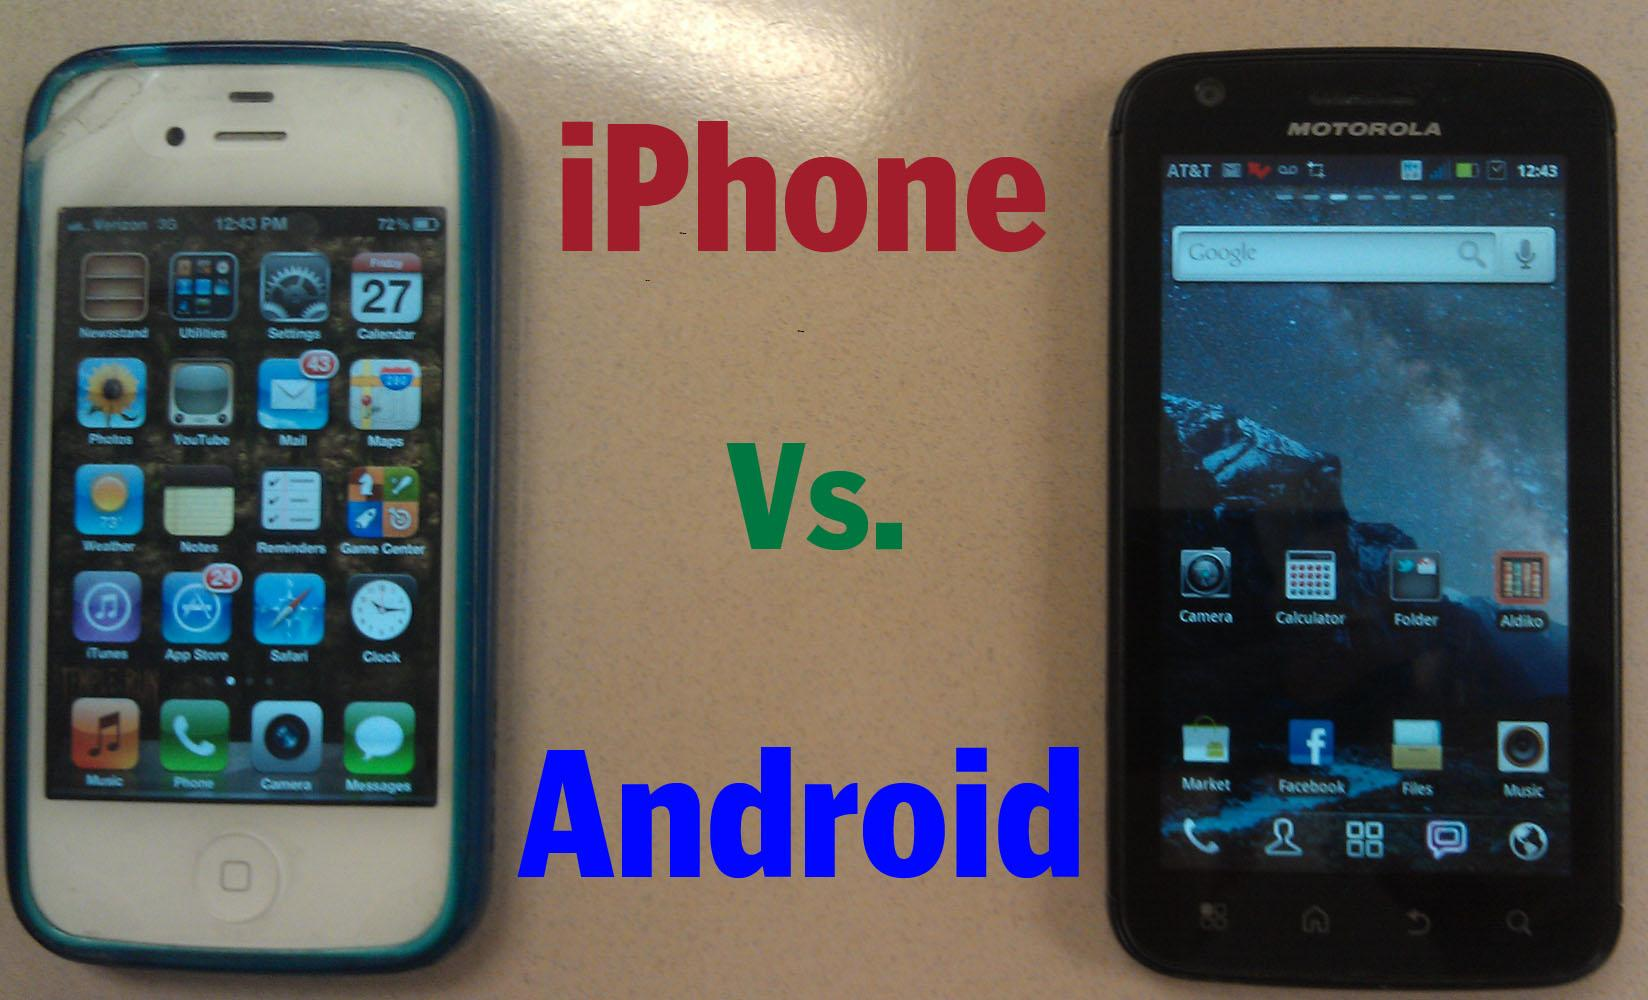 The iPhone and Android phones are very similar in almost every aspect as each boasts different advantages and disadvantages. --Graphic by Robert Lee